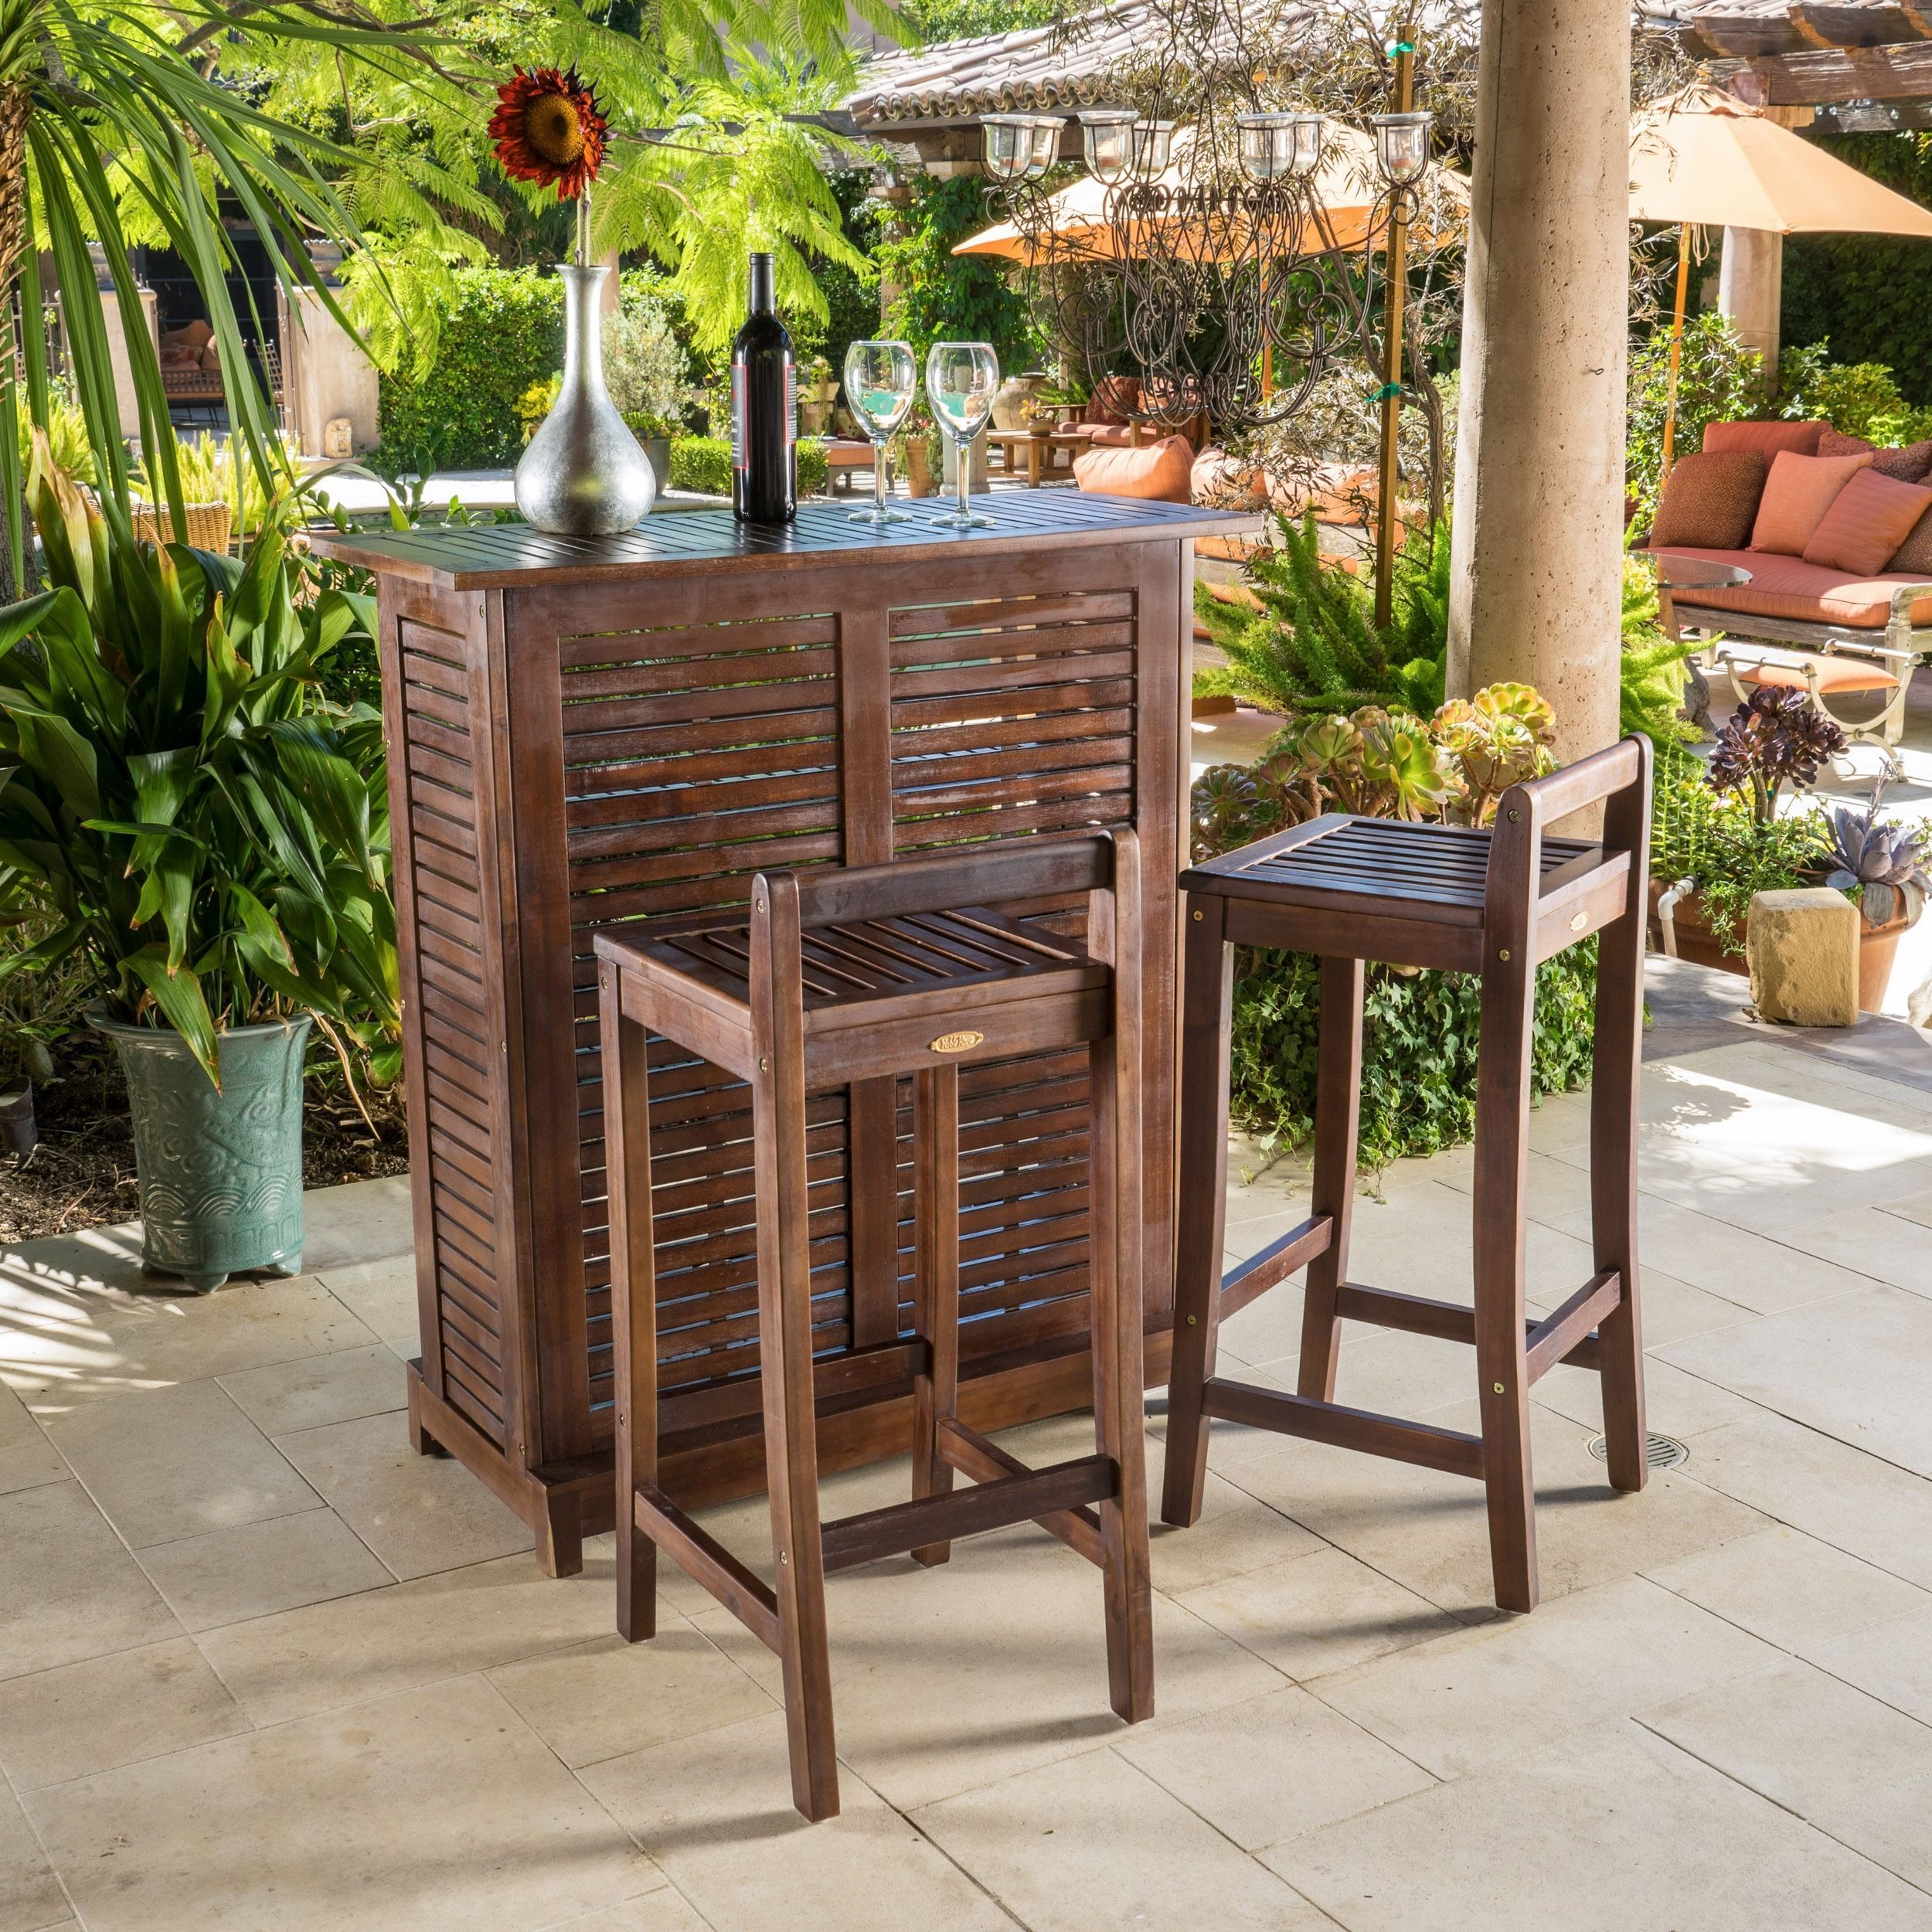 Outdoor Furniture Patio Wicker Bar Set Include Glass Bar Two